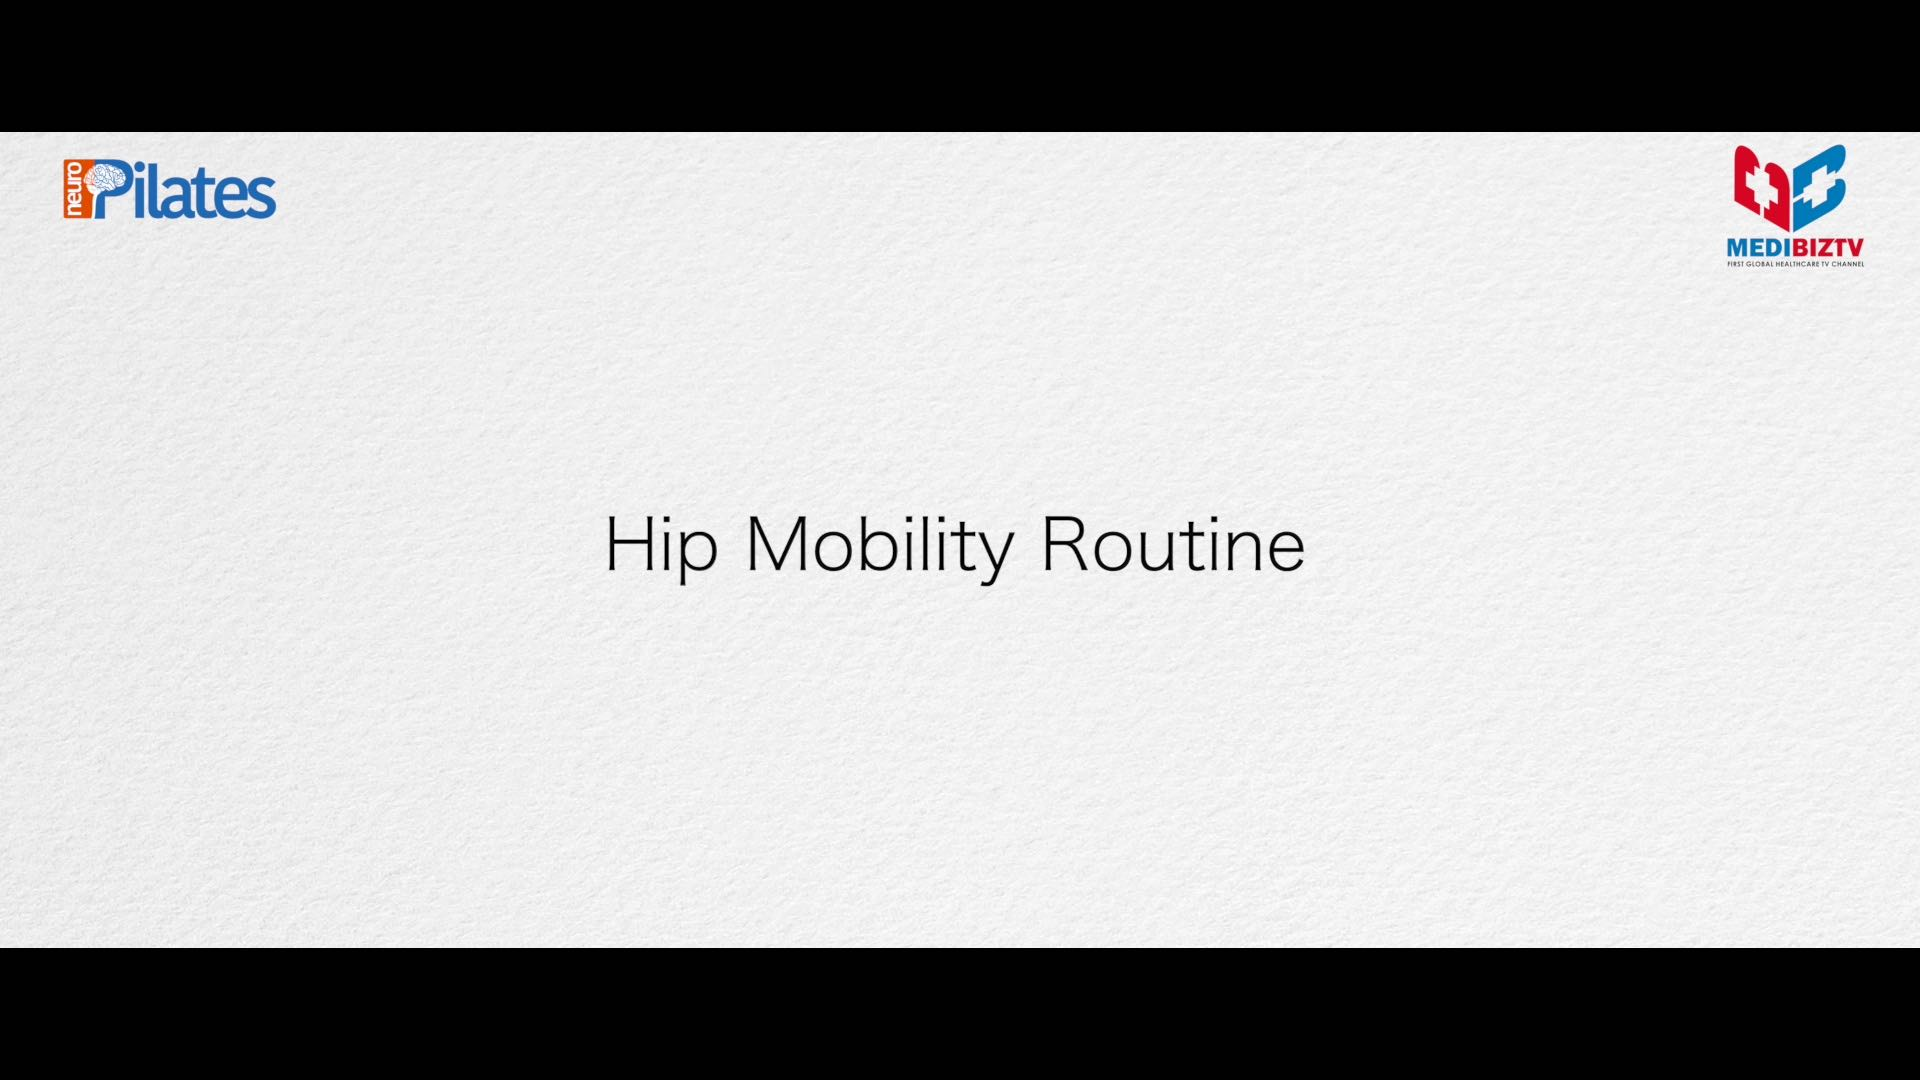 Hip Mobility Routine